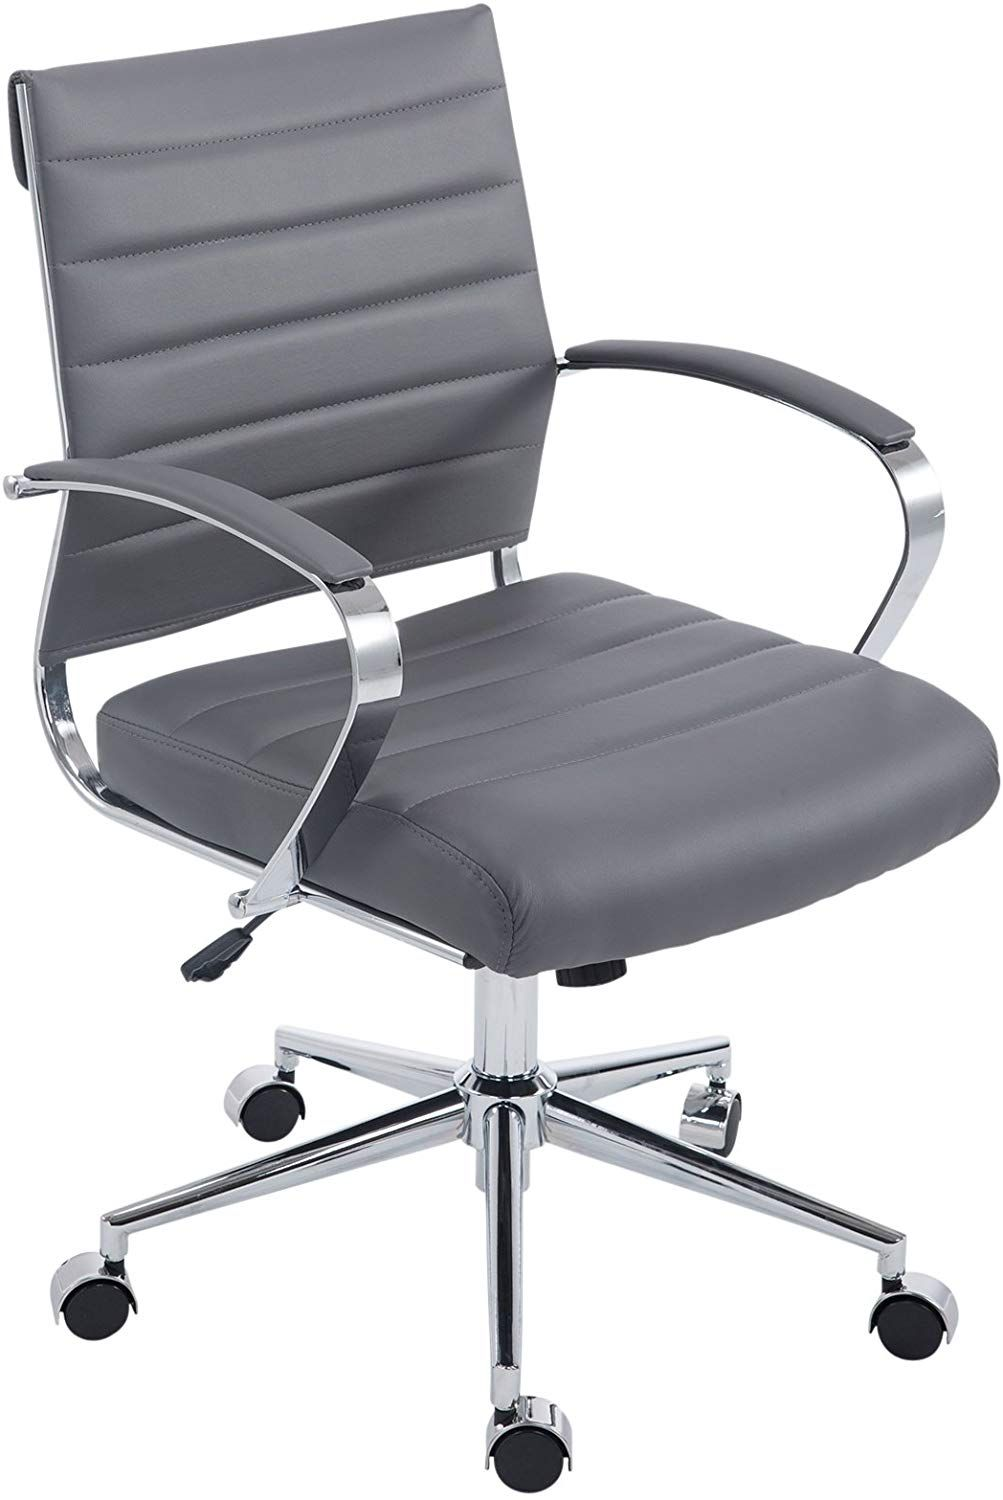 Poly And Bark Tremaine Office Chair Grey Modern Office Chair Mid Century Modern Office Chair Office Chair